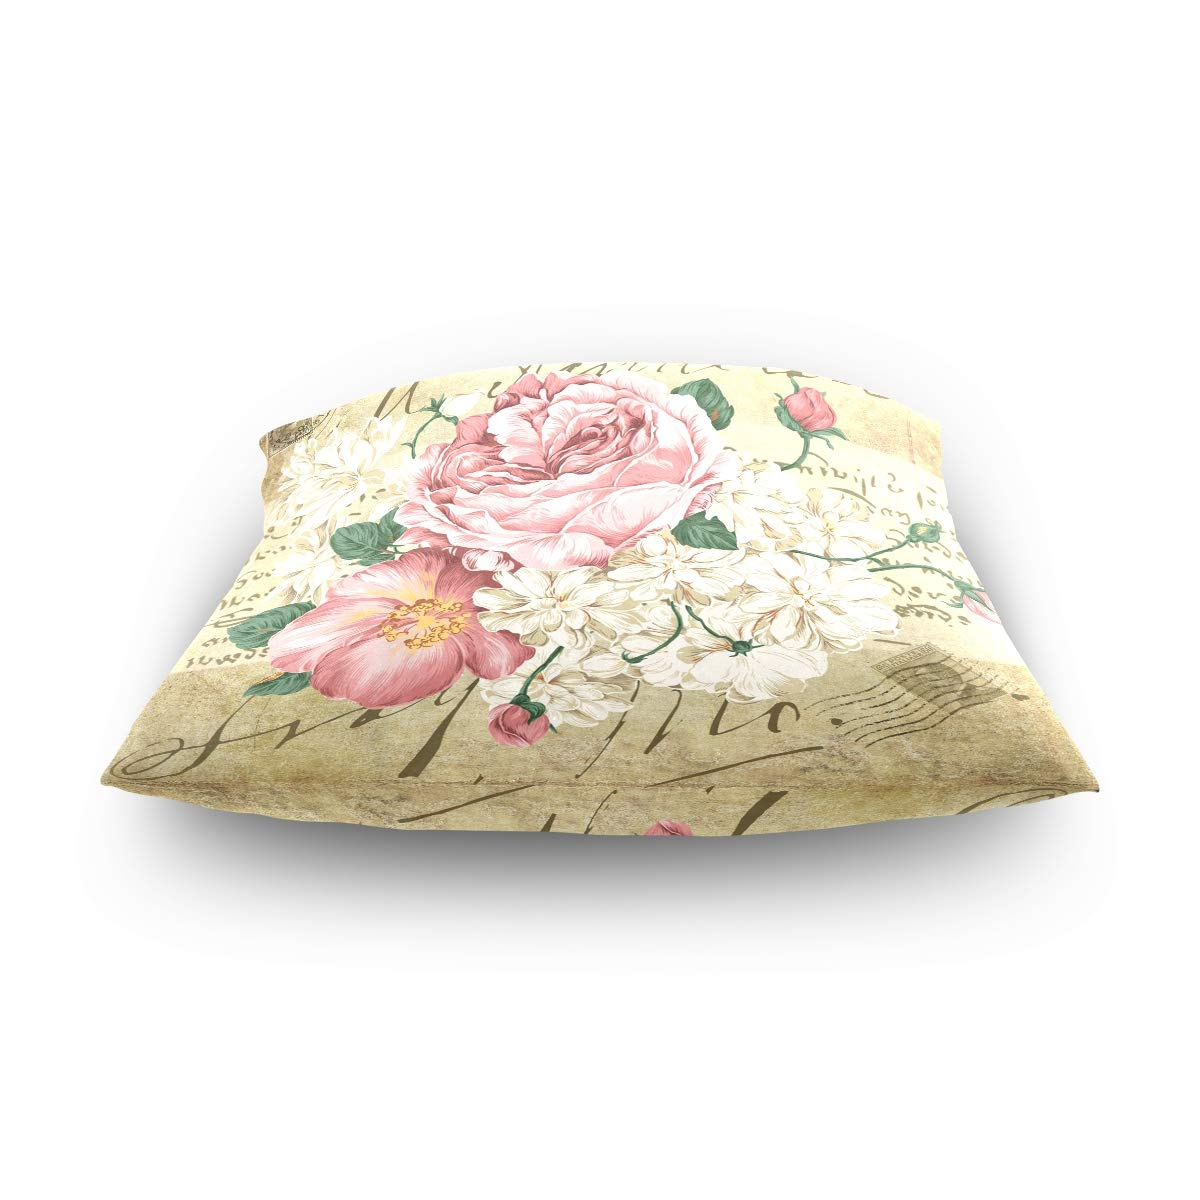 ZOEO Square Decorative Throw Pillow Case Cushion Cover,Vintage Shabby Chic Pink Rose Floral,Soft Pillowcase 20x20 inch 20 x 20